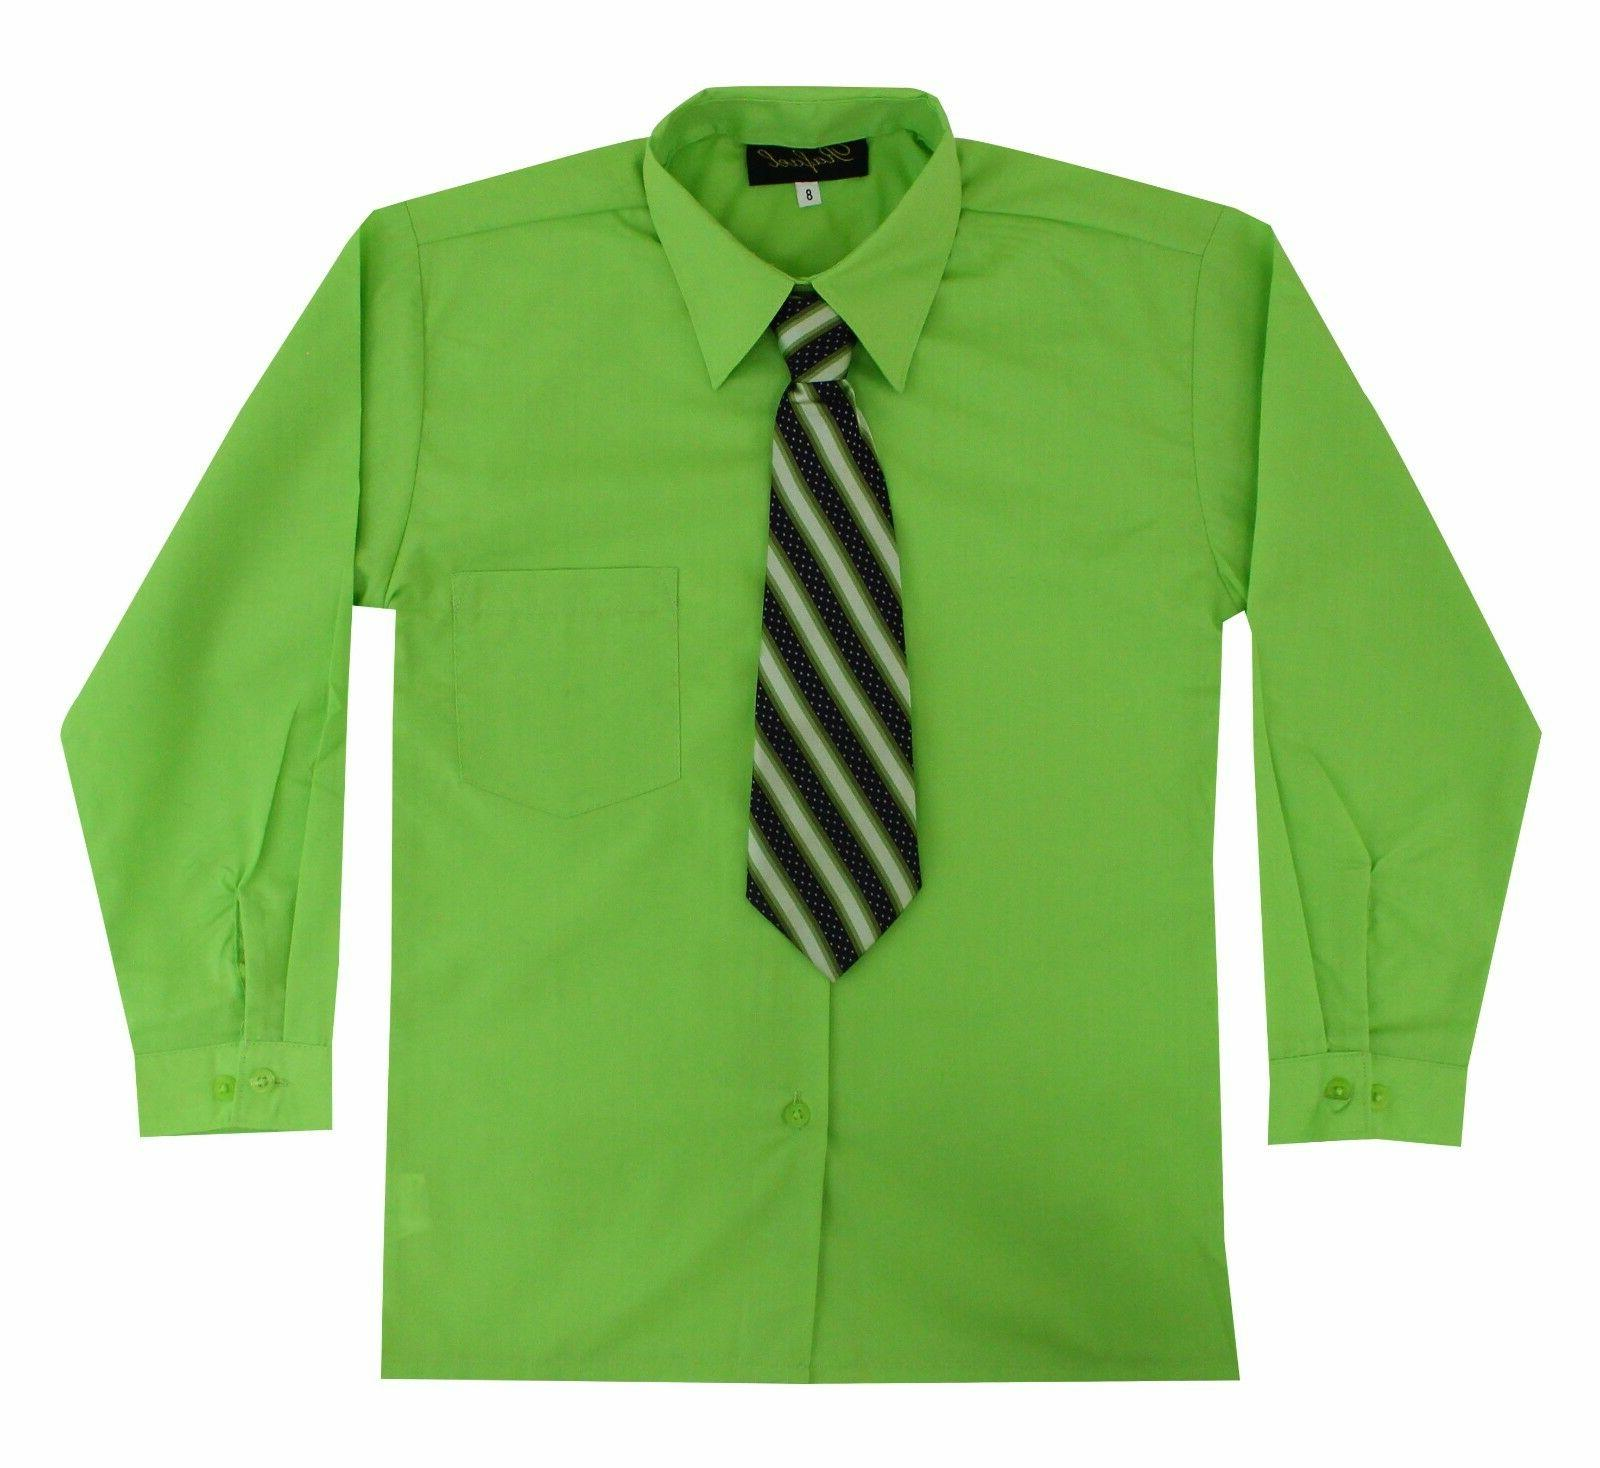 Kids Toddlers Sleeve Shirt Tie Set 2T to 14